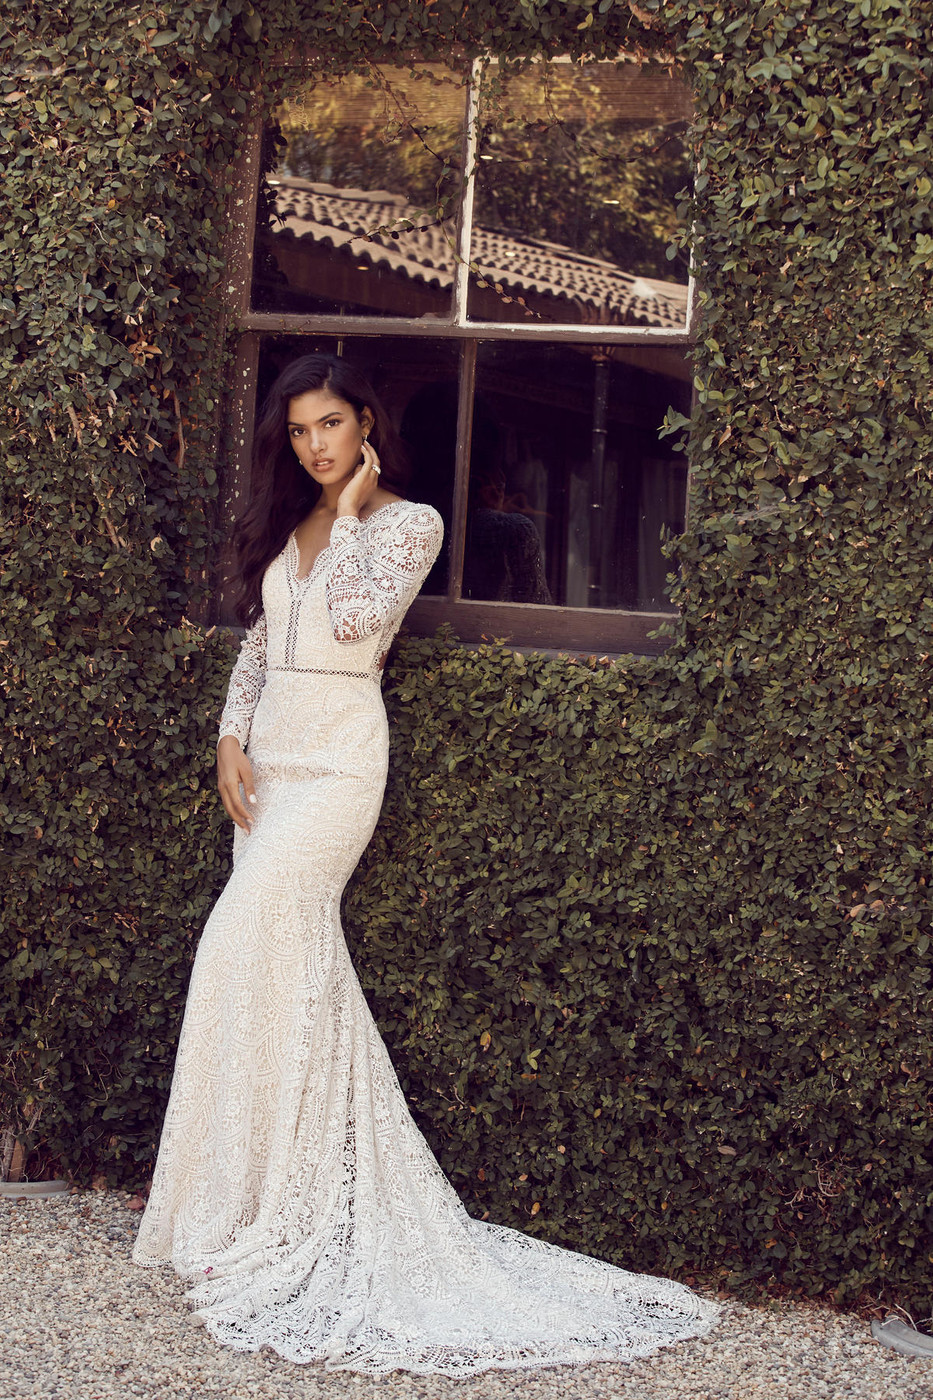 Gown of the week!